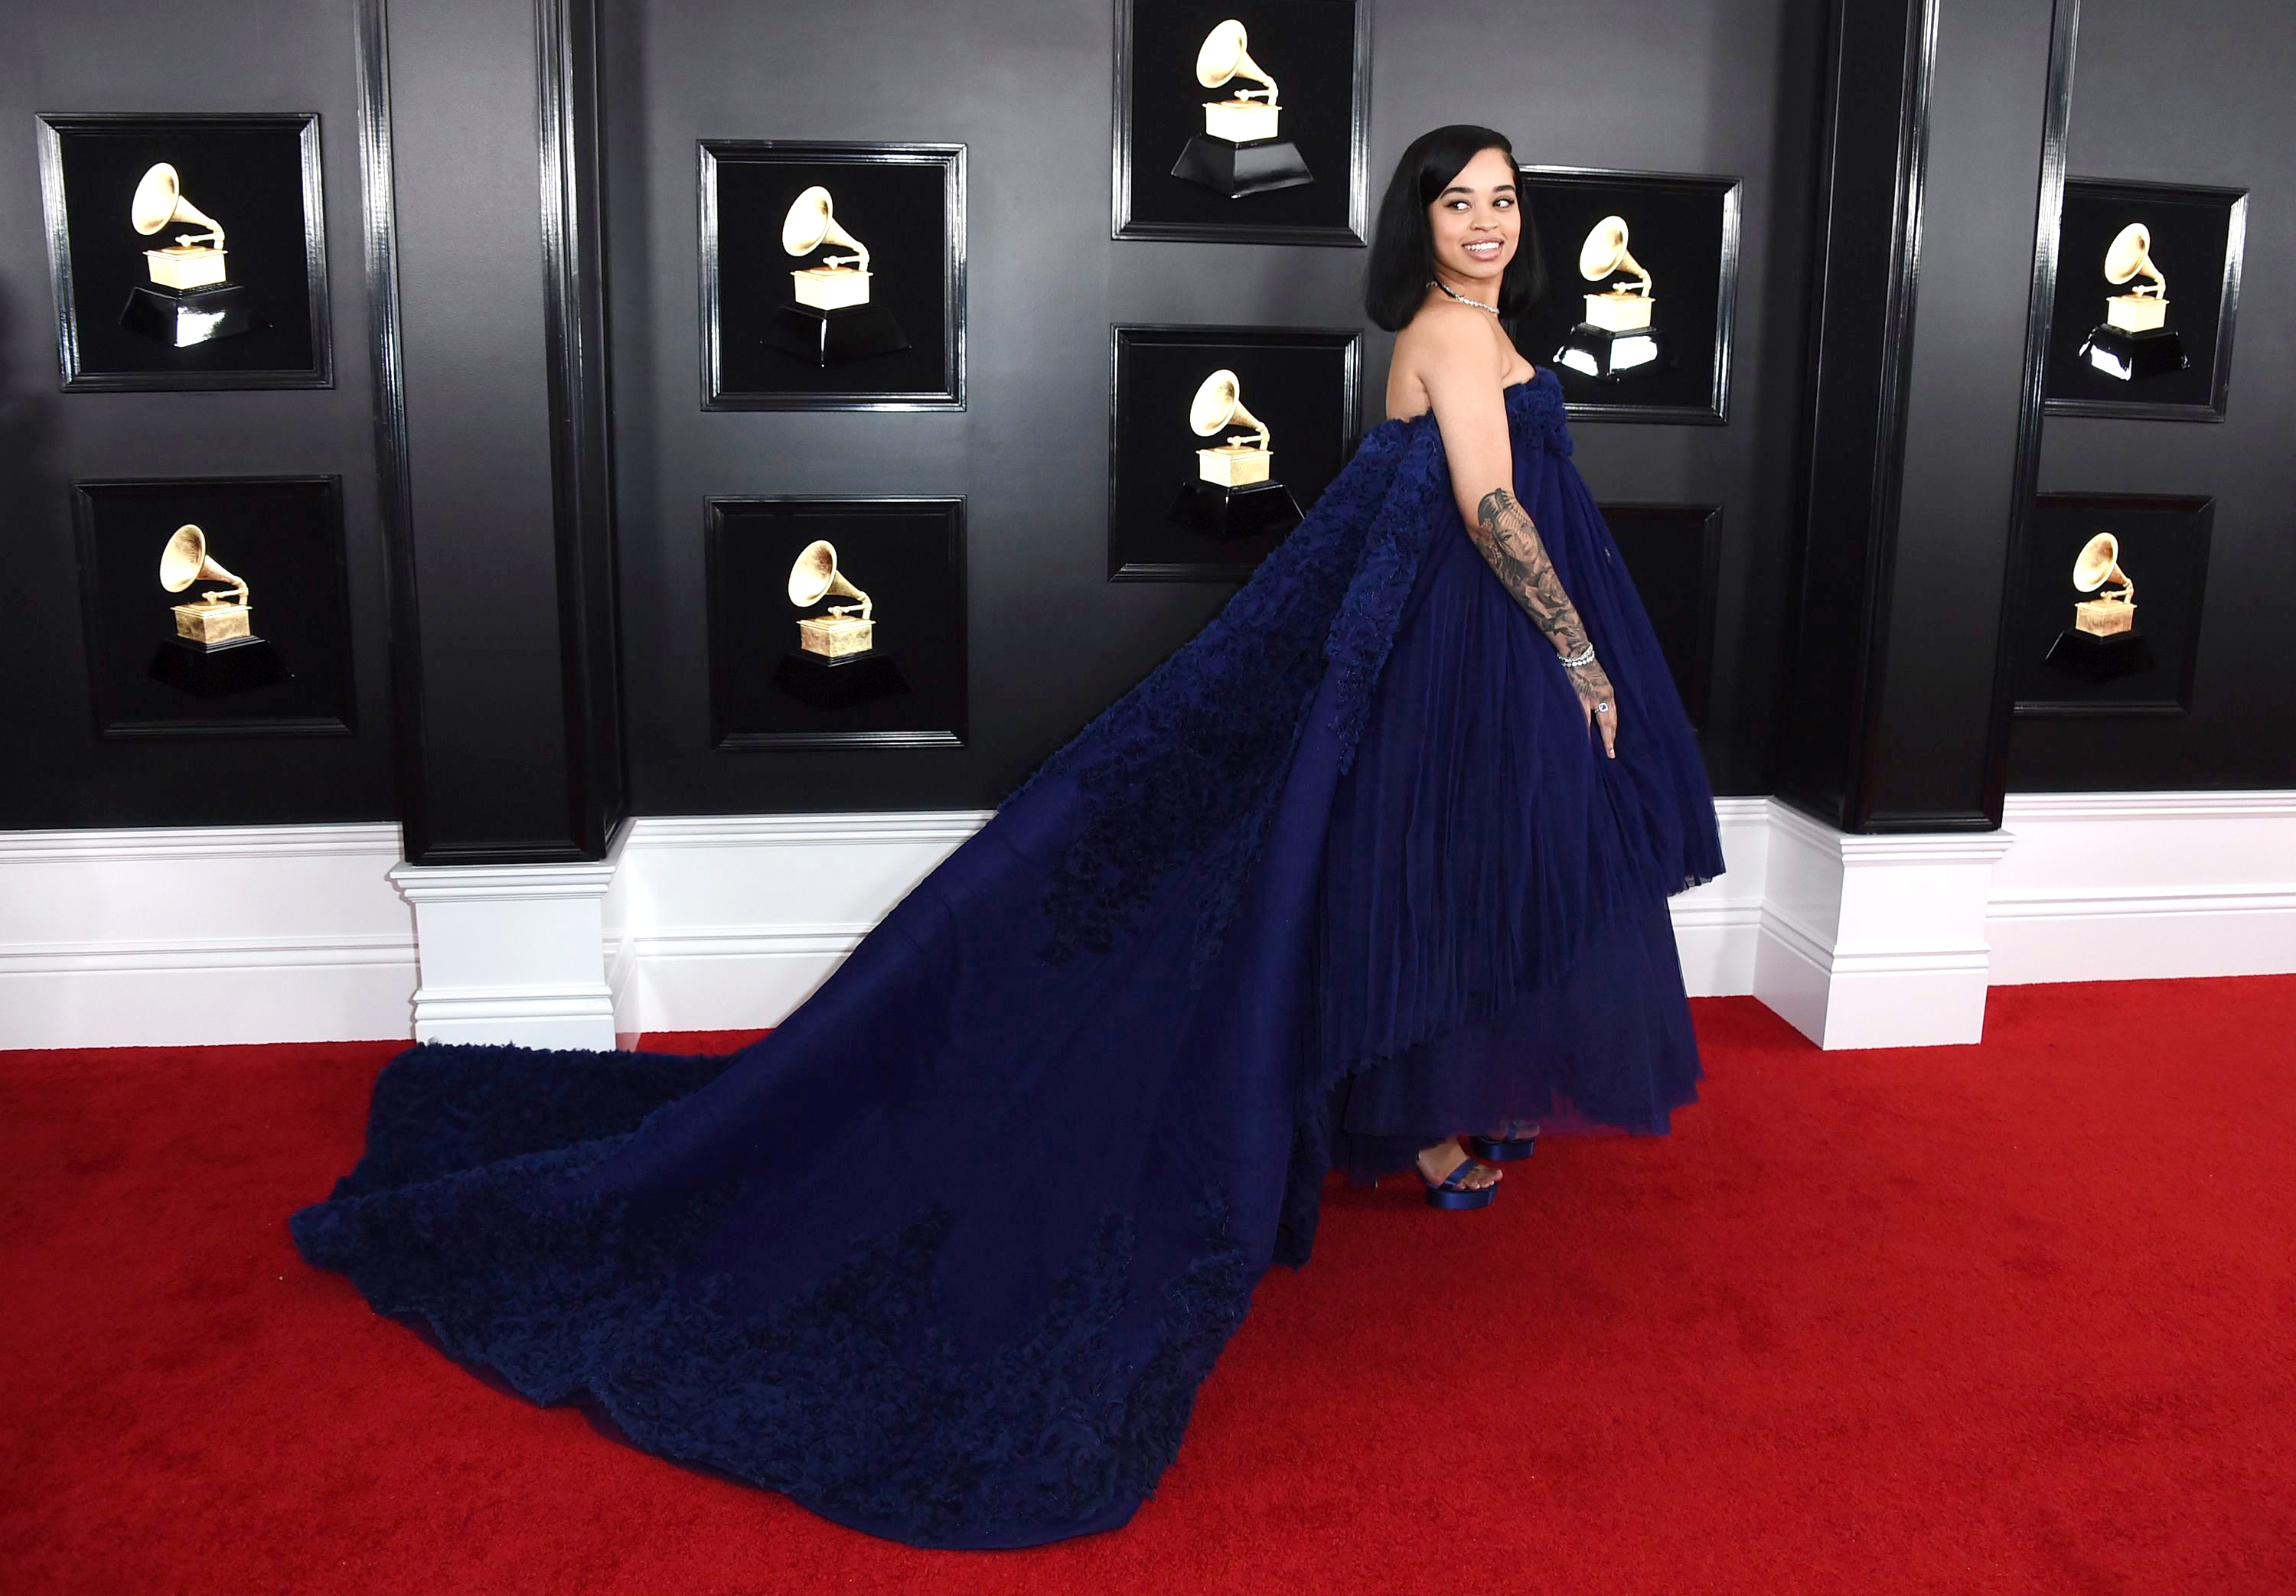 grammys 2019 red carpet stars talk dresses and diversity wwd https wwd com eye parties 2019 grammys red carpet stars talk dresses diversity 1203014069